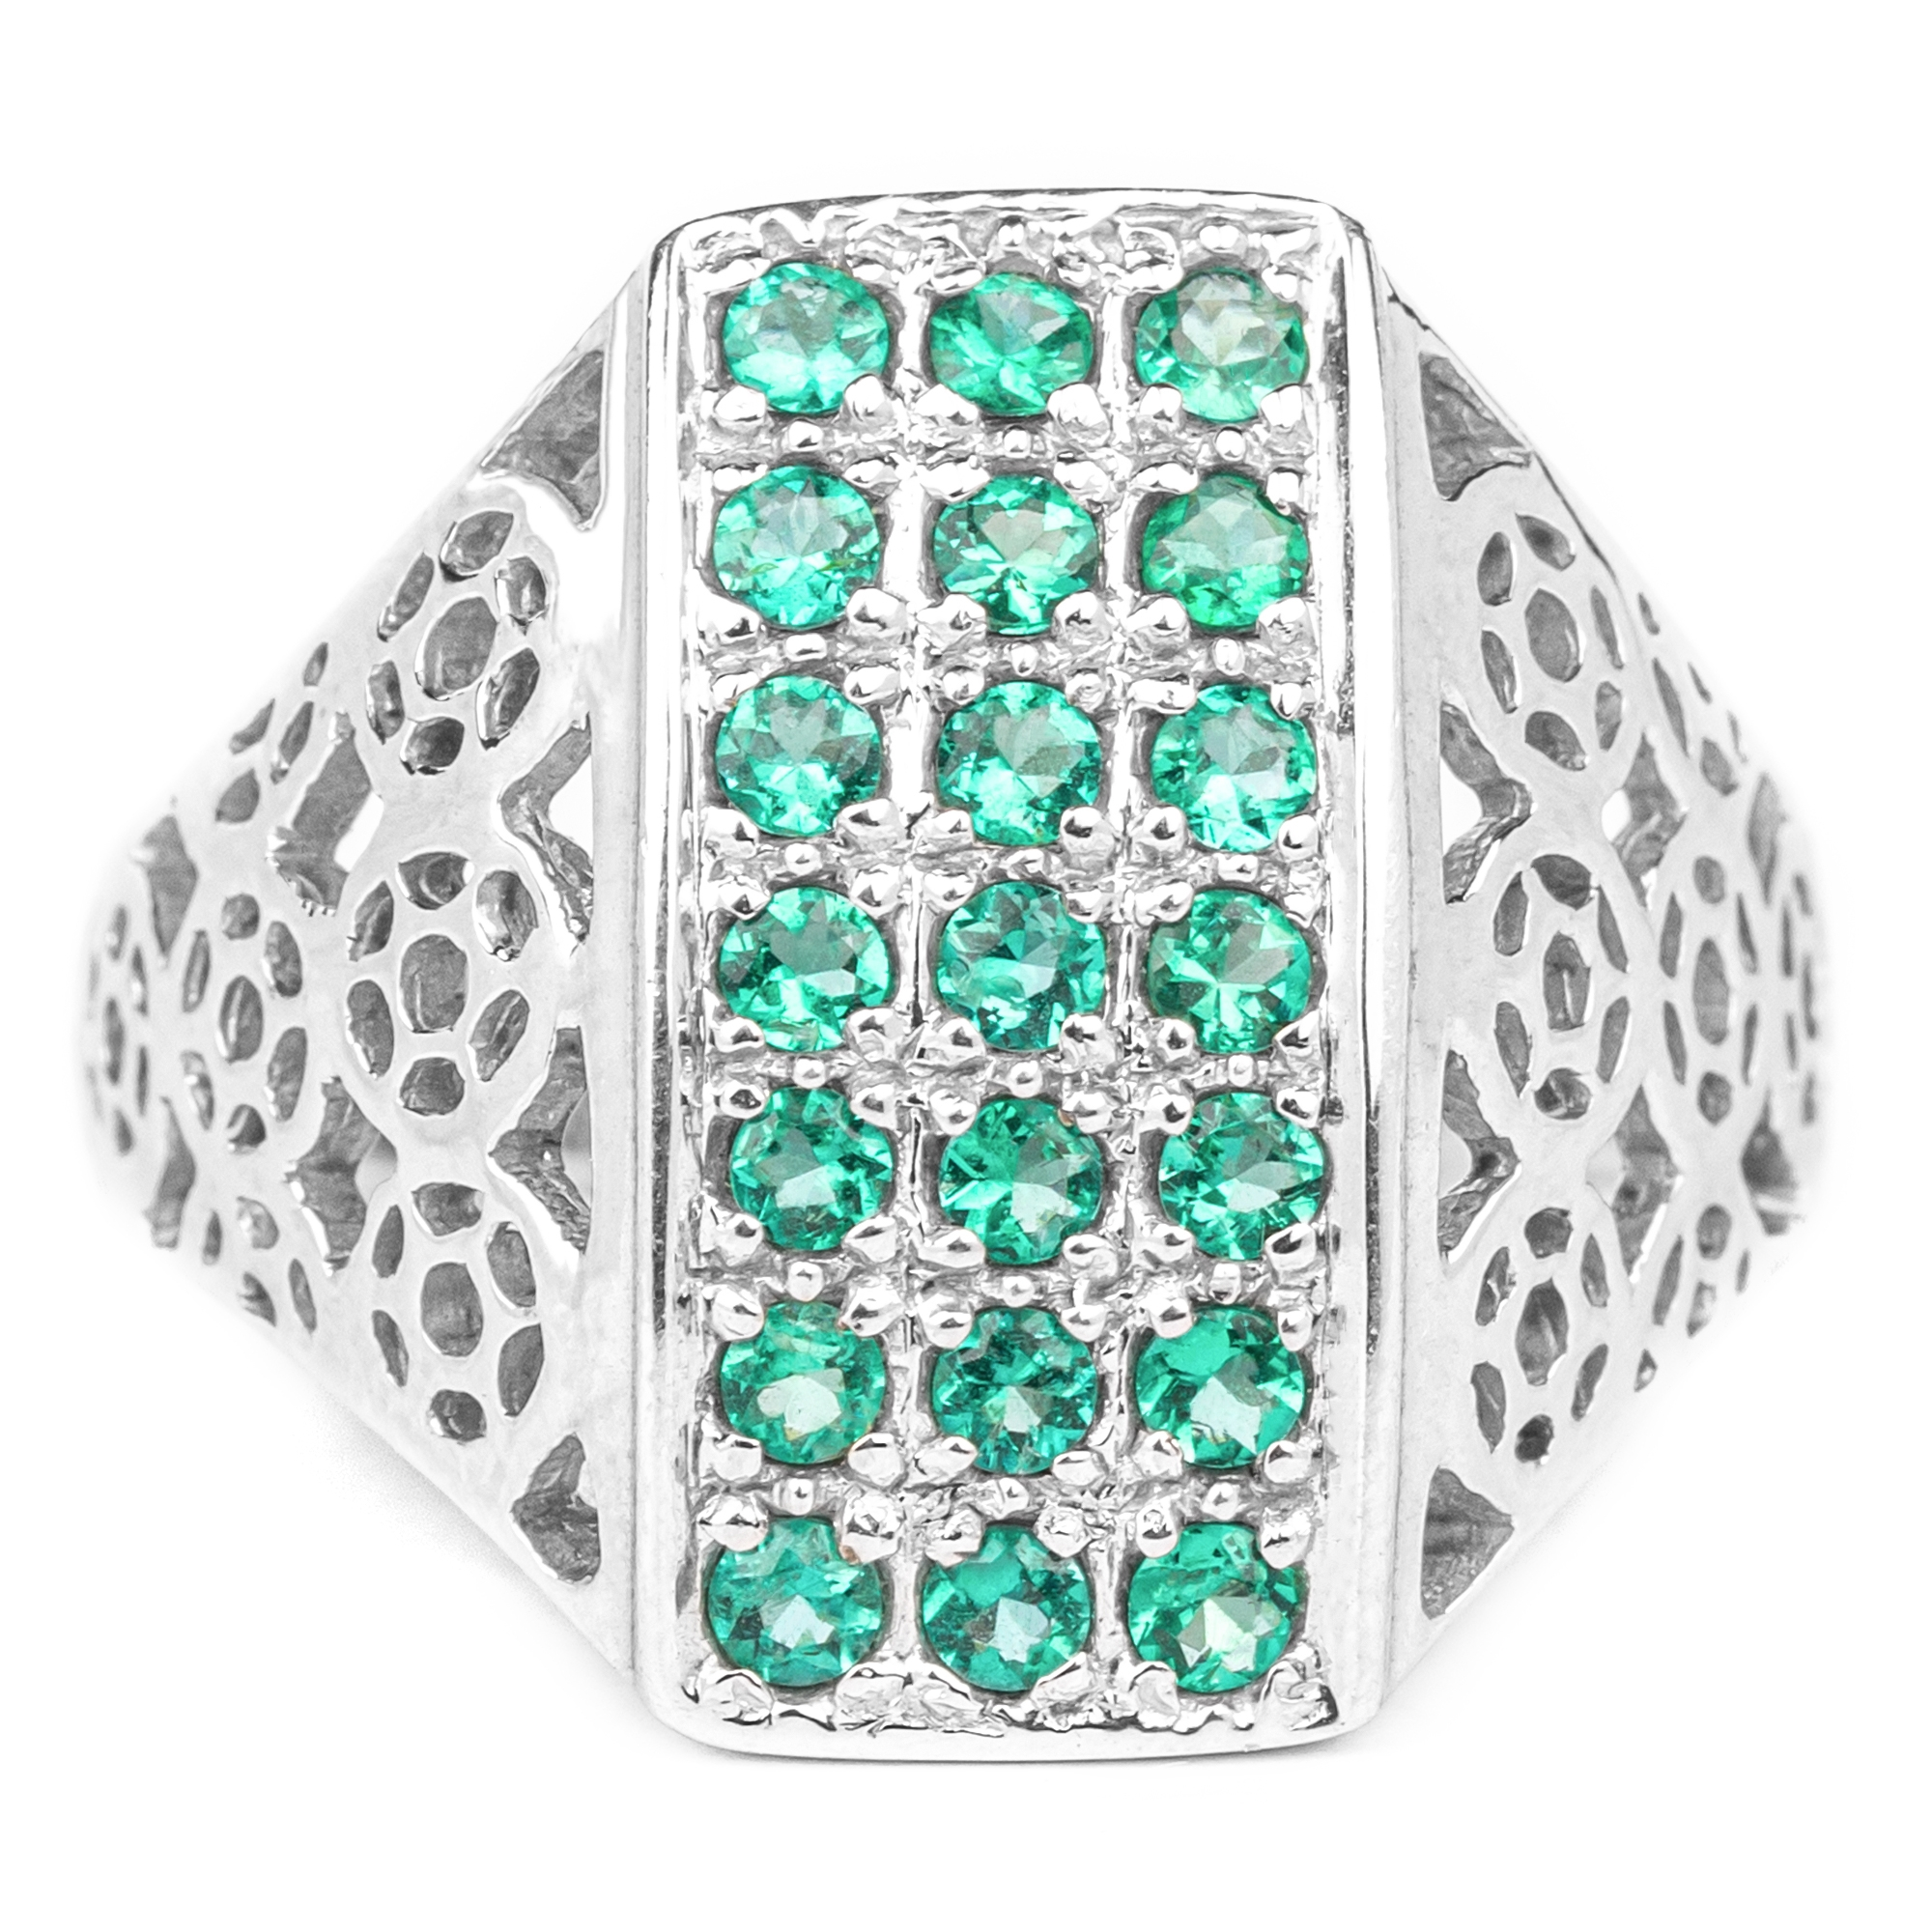 1 CT Emerald Unisex Statement Ring with Gold Cutout Details